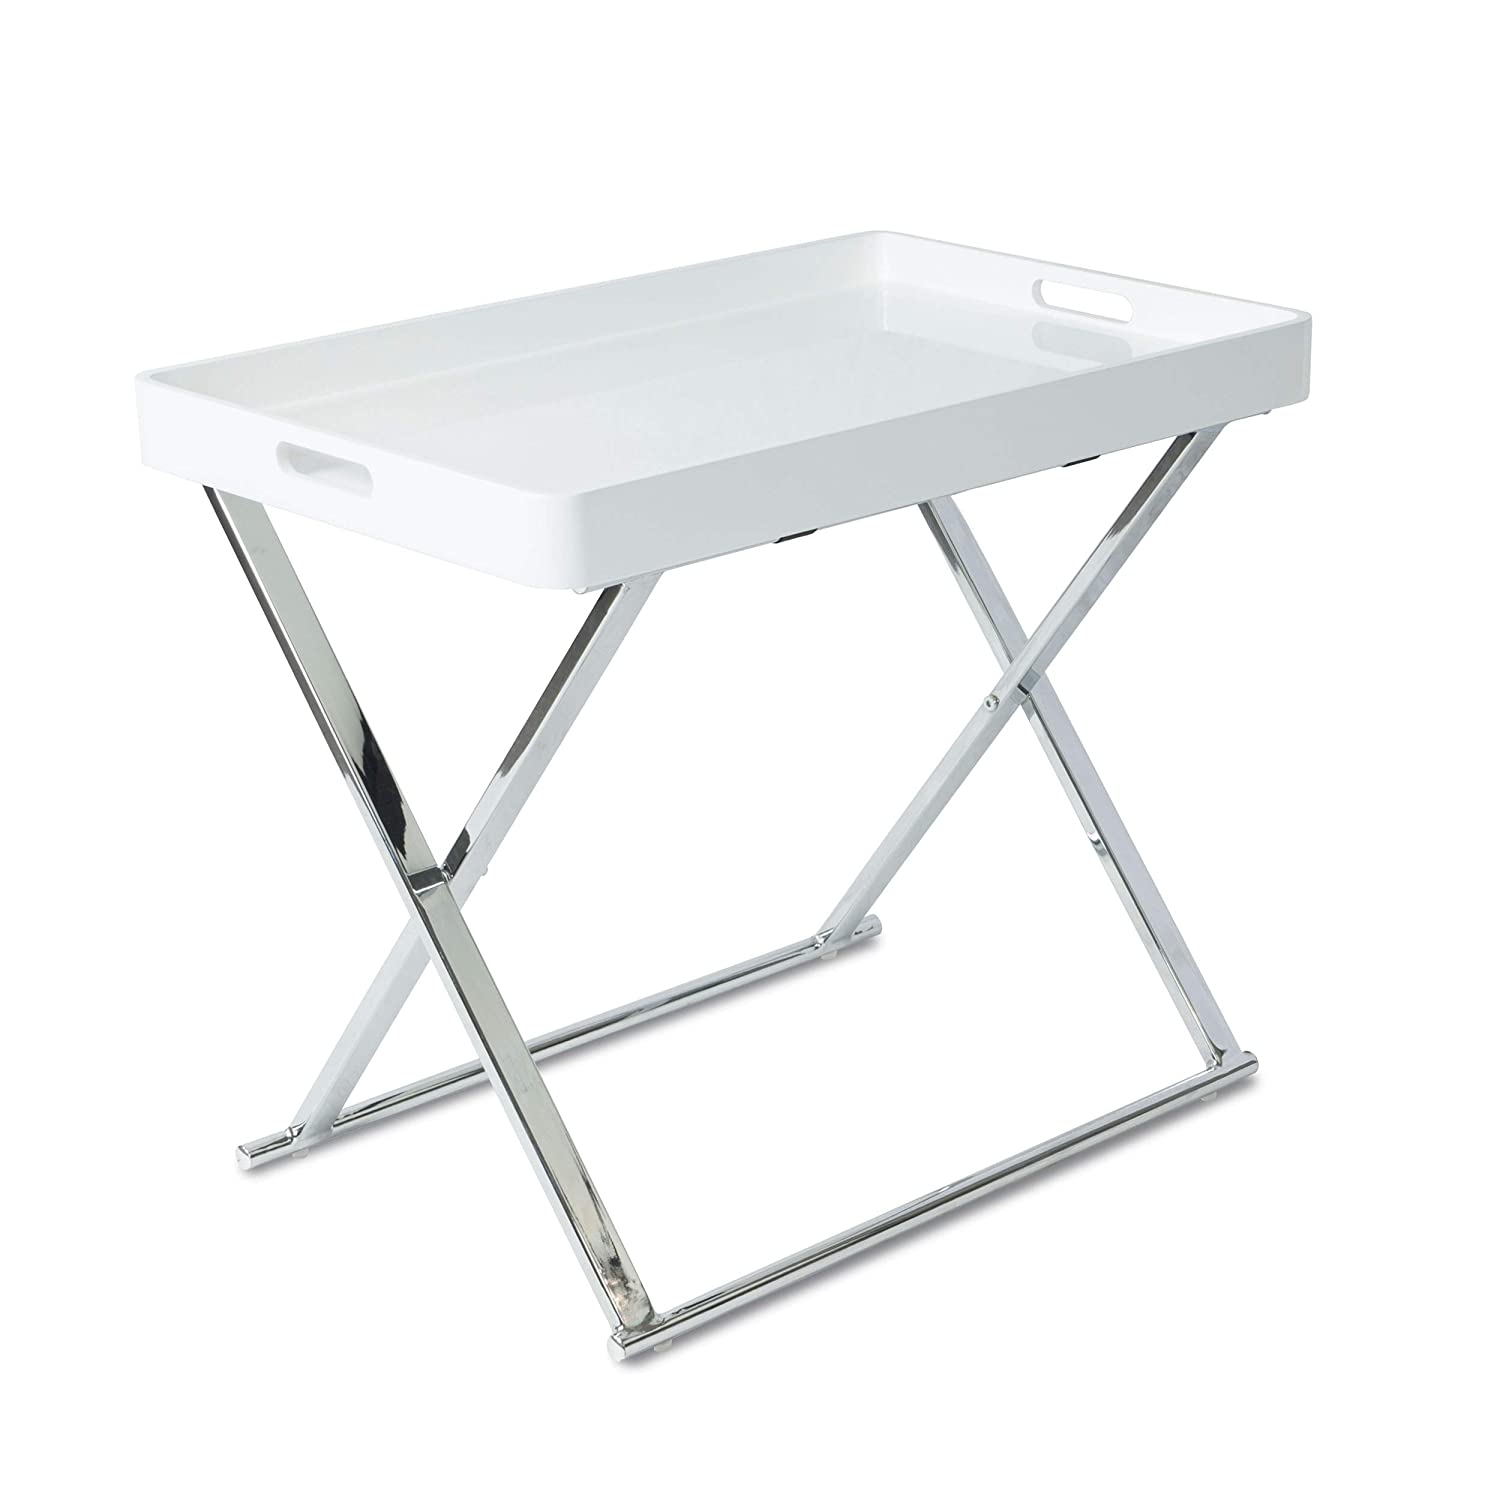 urb SPACE Accent Table Folding Tray, White Silver